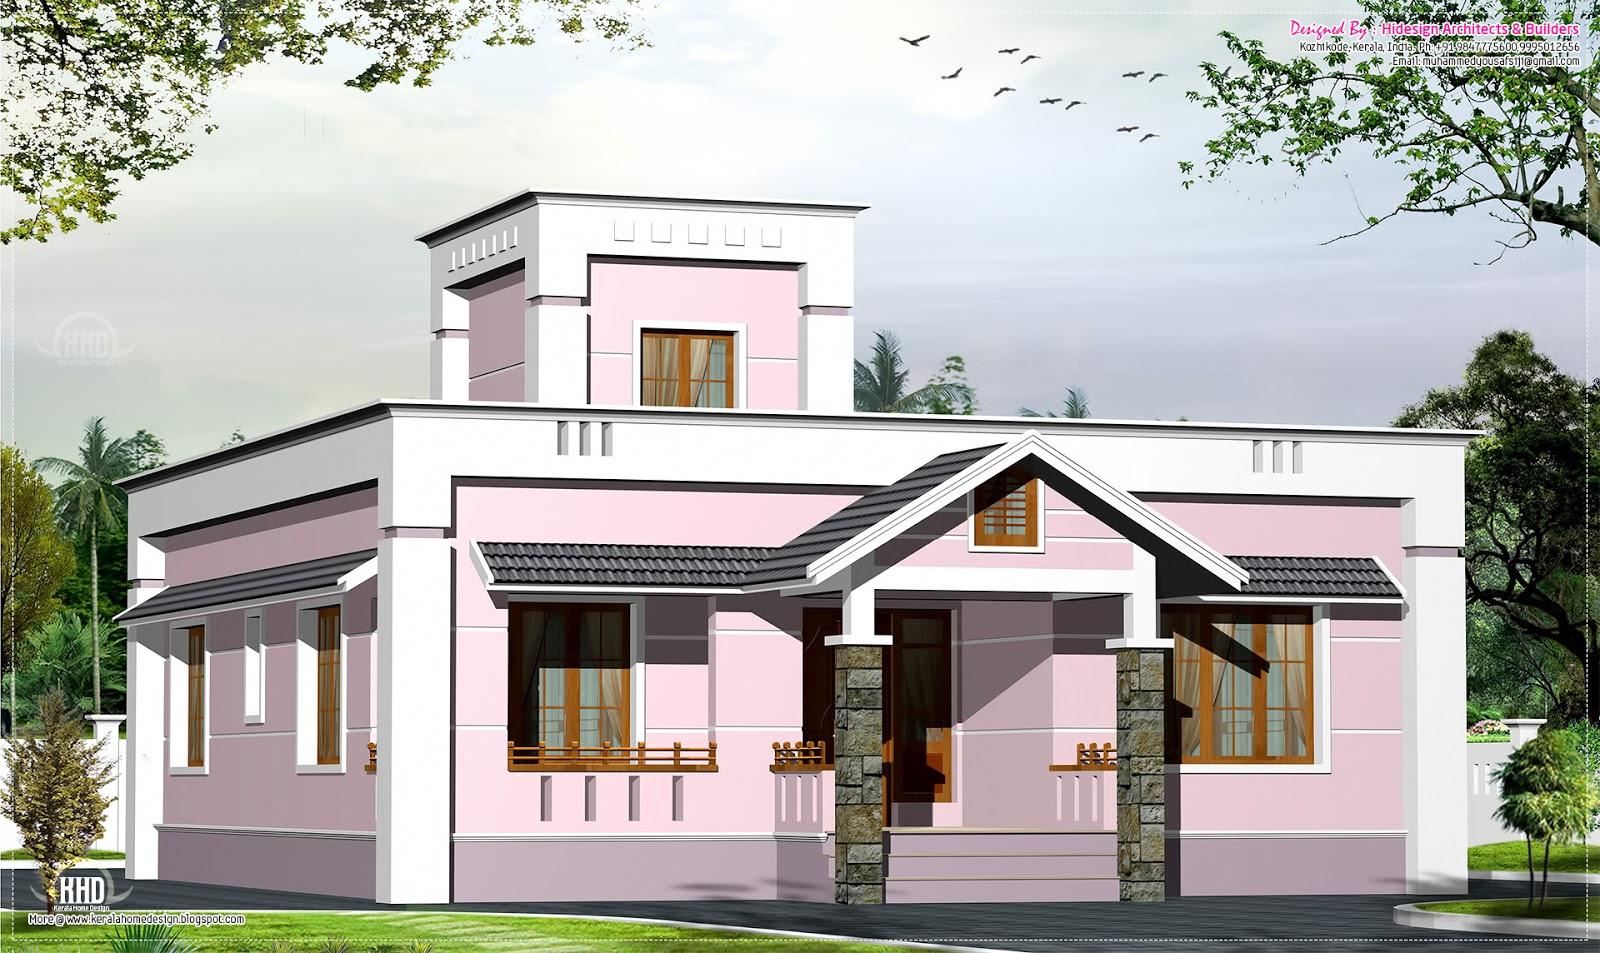 1000 small budget villa plan kerala home design On small budget home design